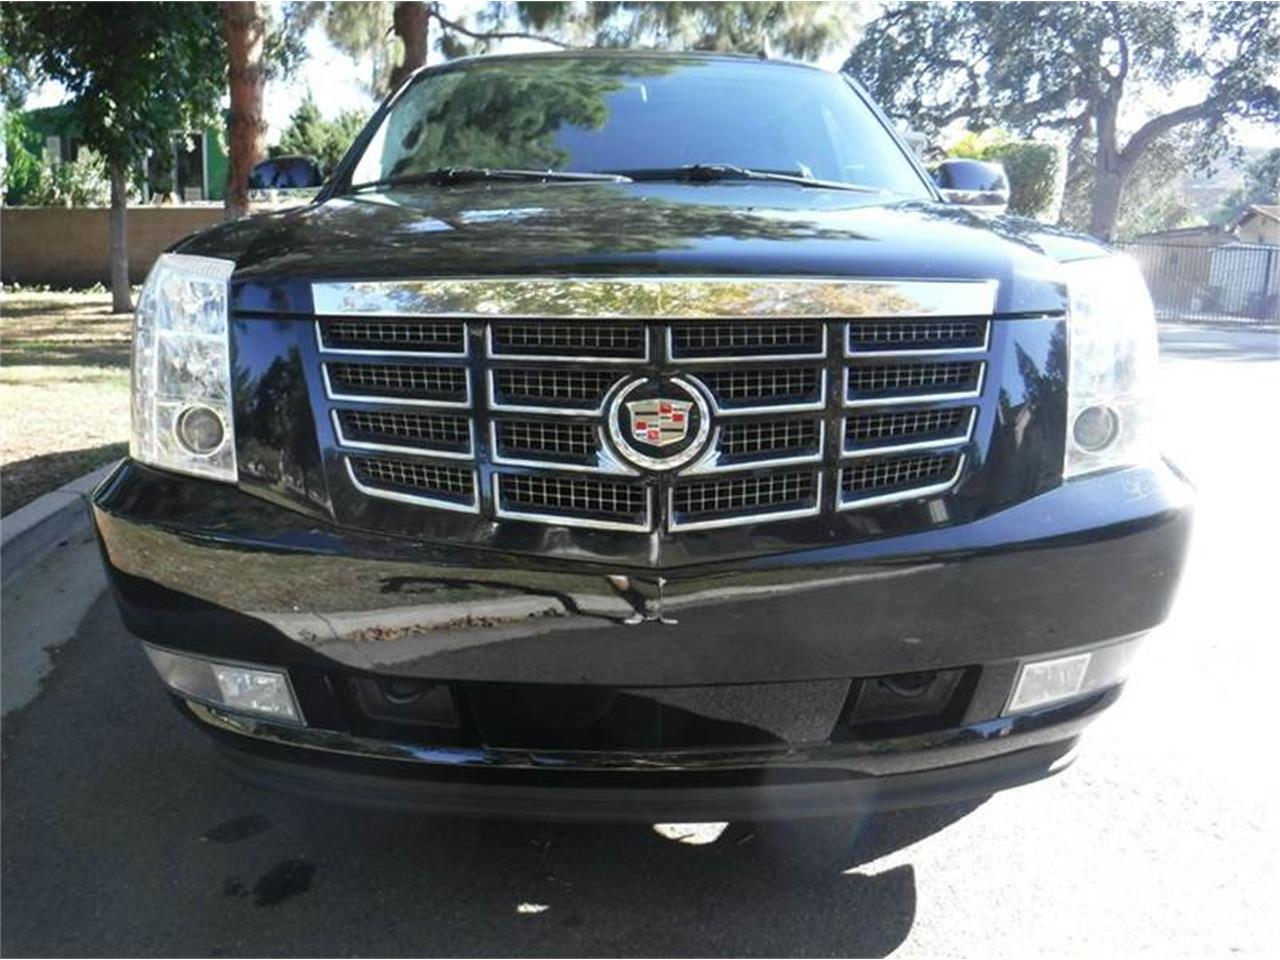 2010 Cadillac Escalade For Sale Cc 893396 Trailer Wiring Large Picture Of 10 J5ck